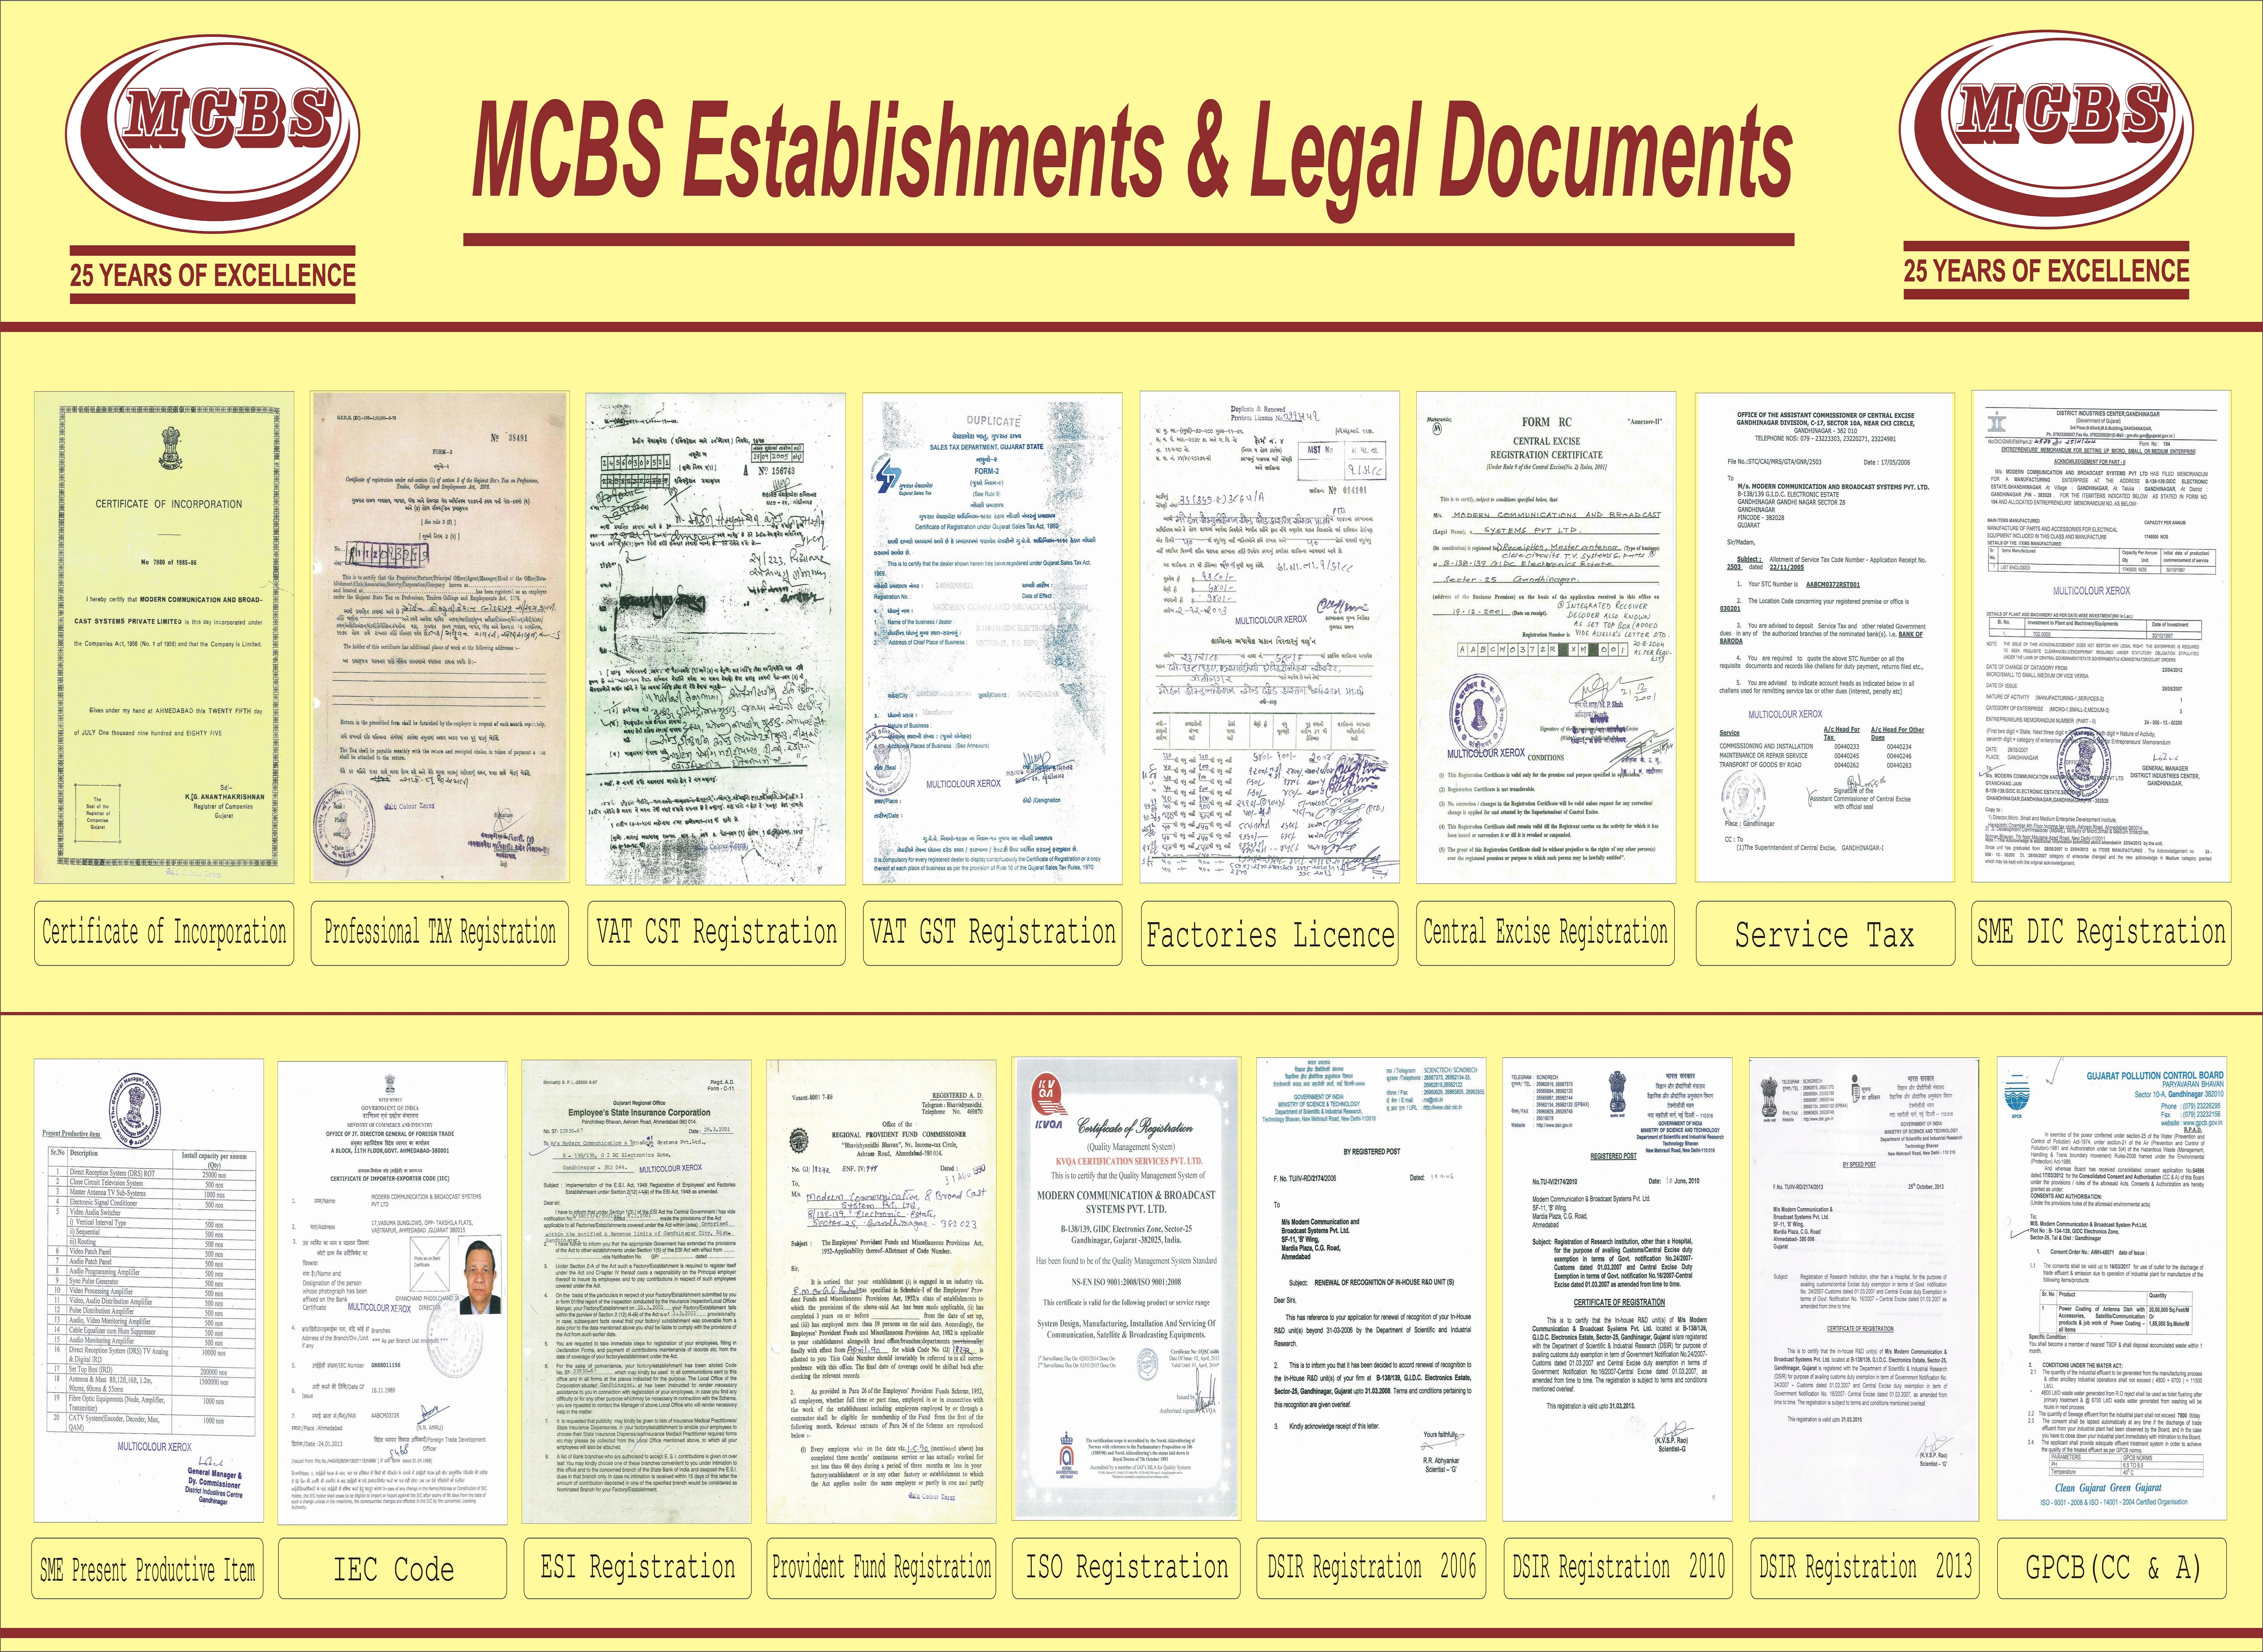 Legal Documents - Legal type documents